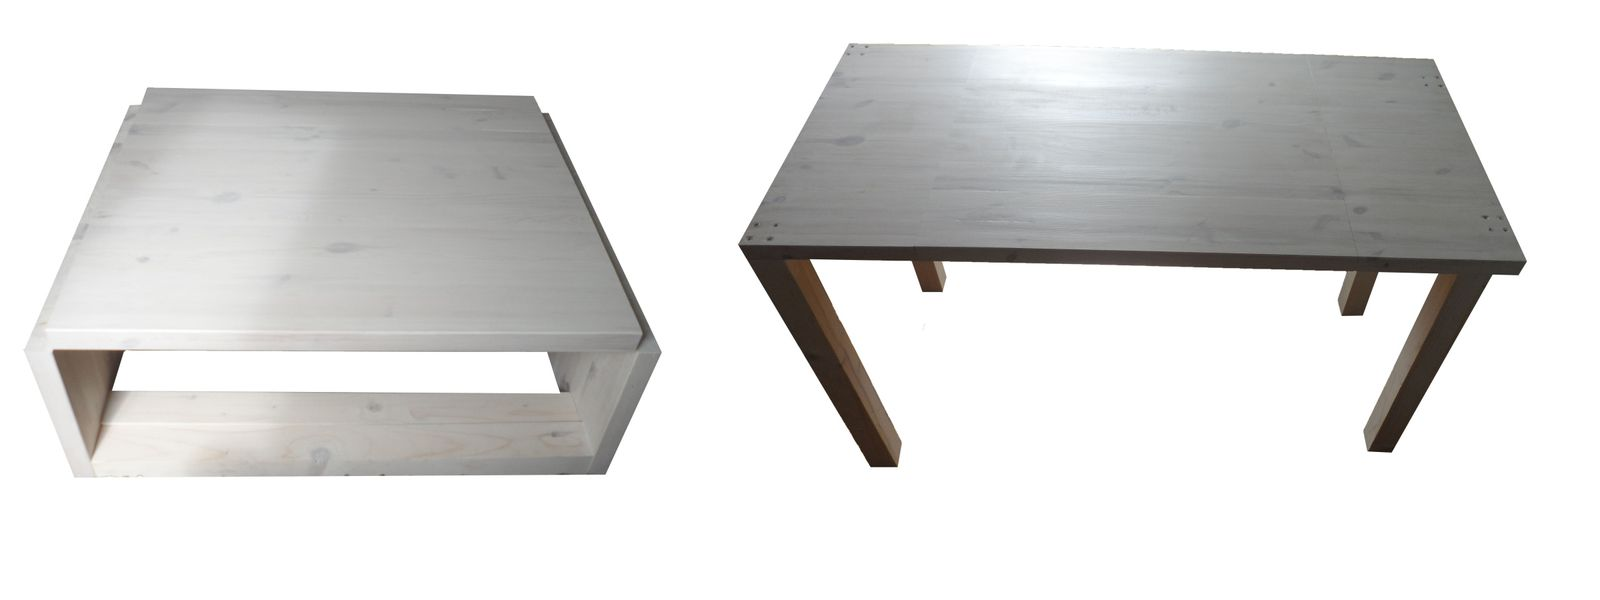 Table basse haute convertible - Table basse convertible en table haute ...